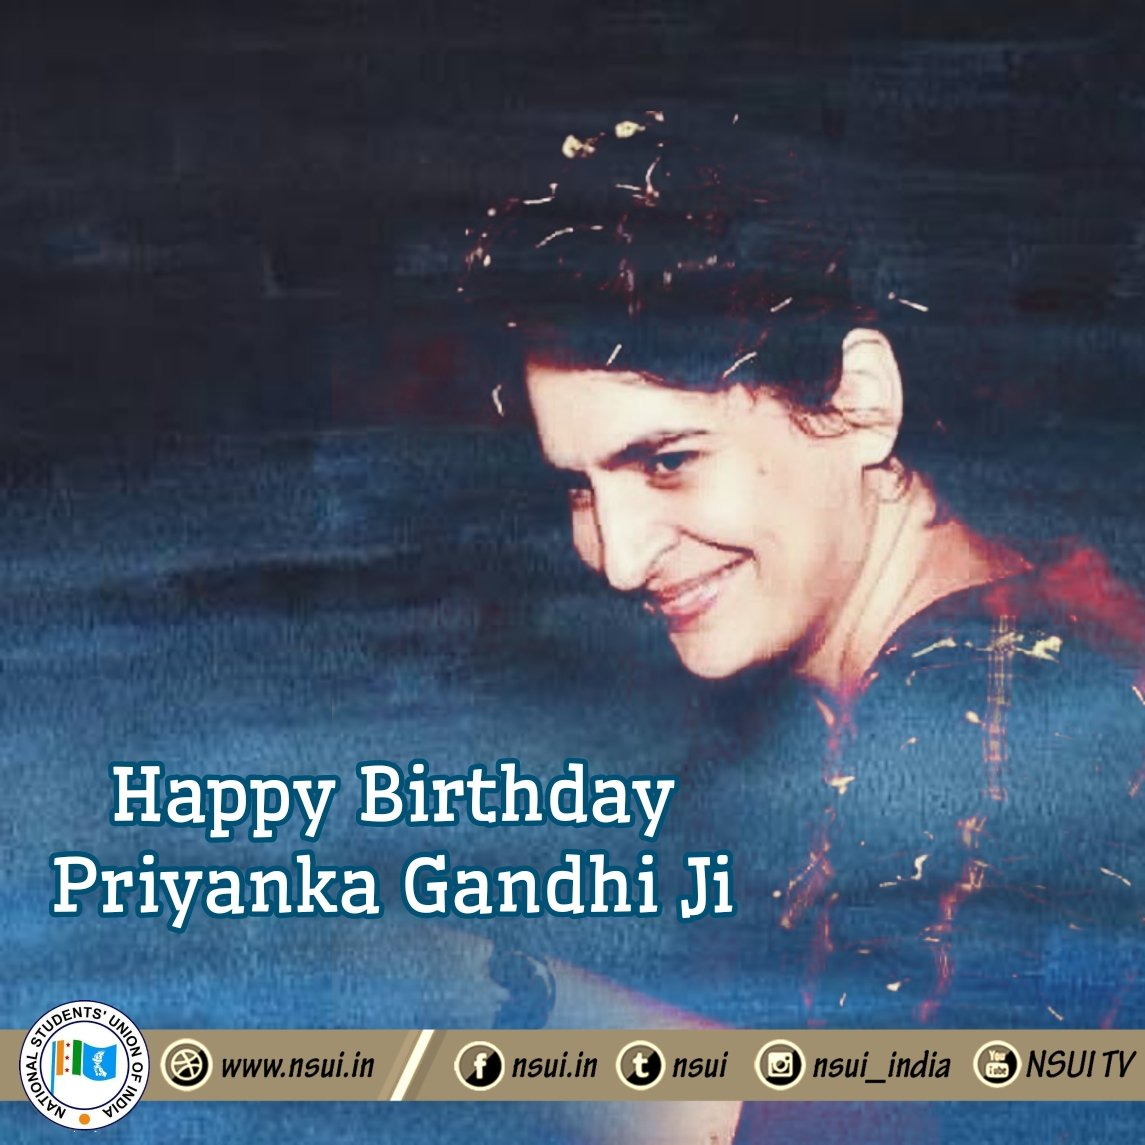 Wishing priyanka gandhi a very special happy birthday